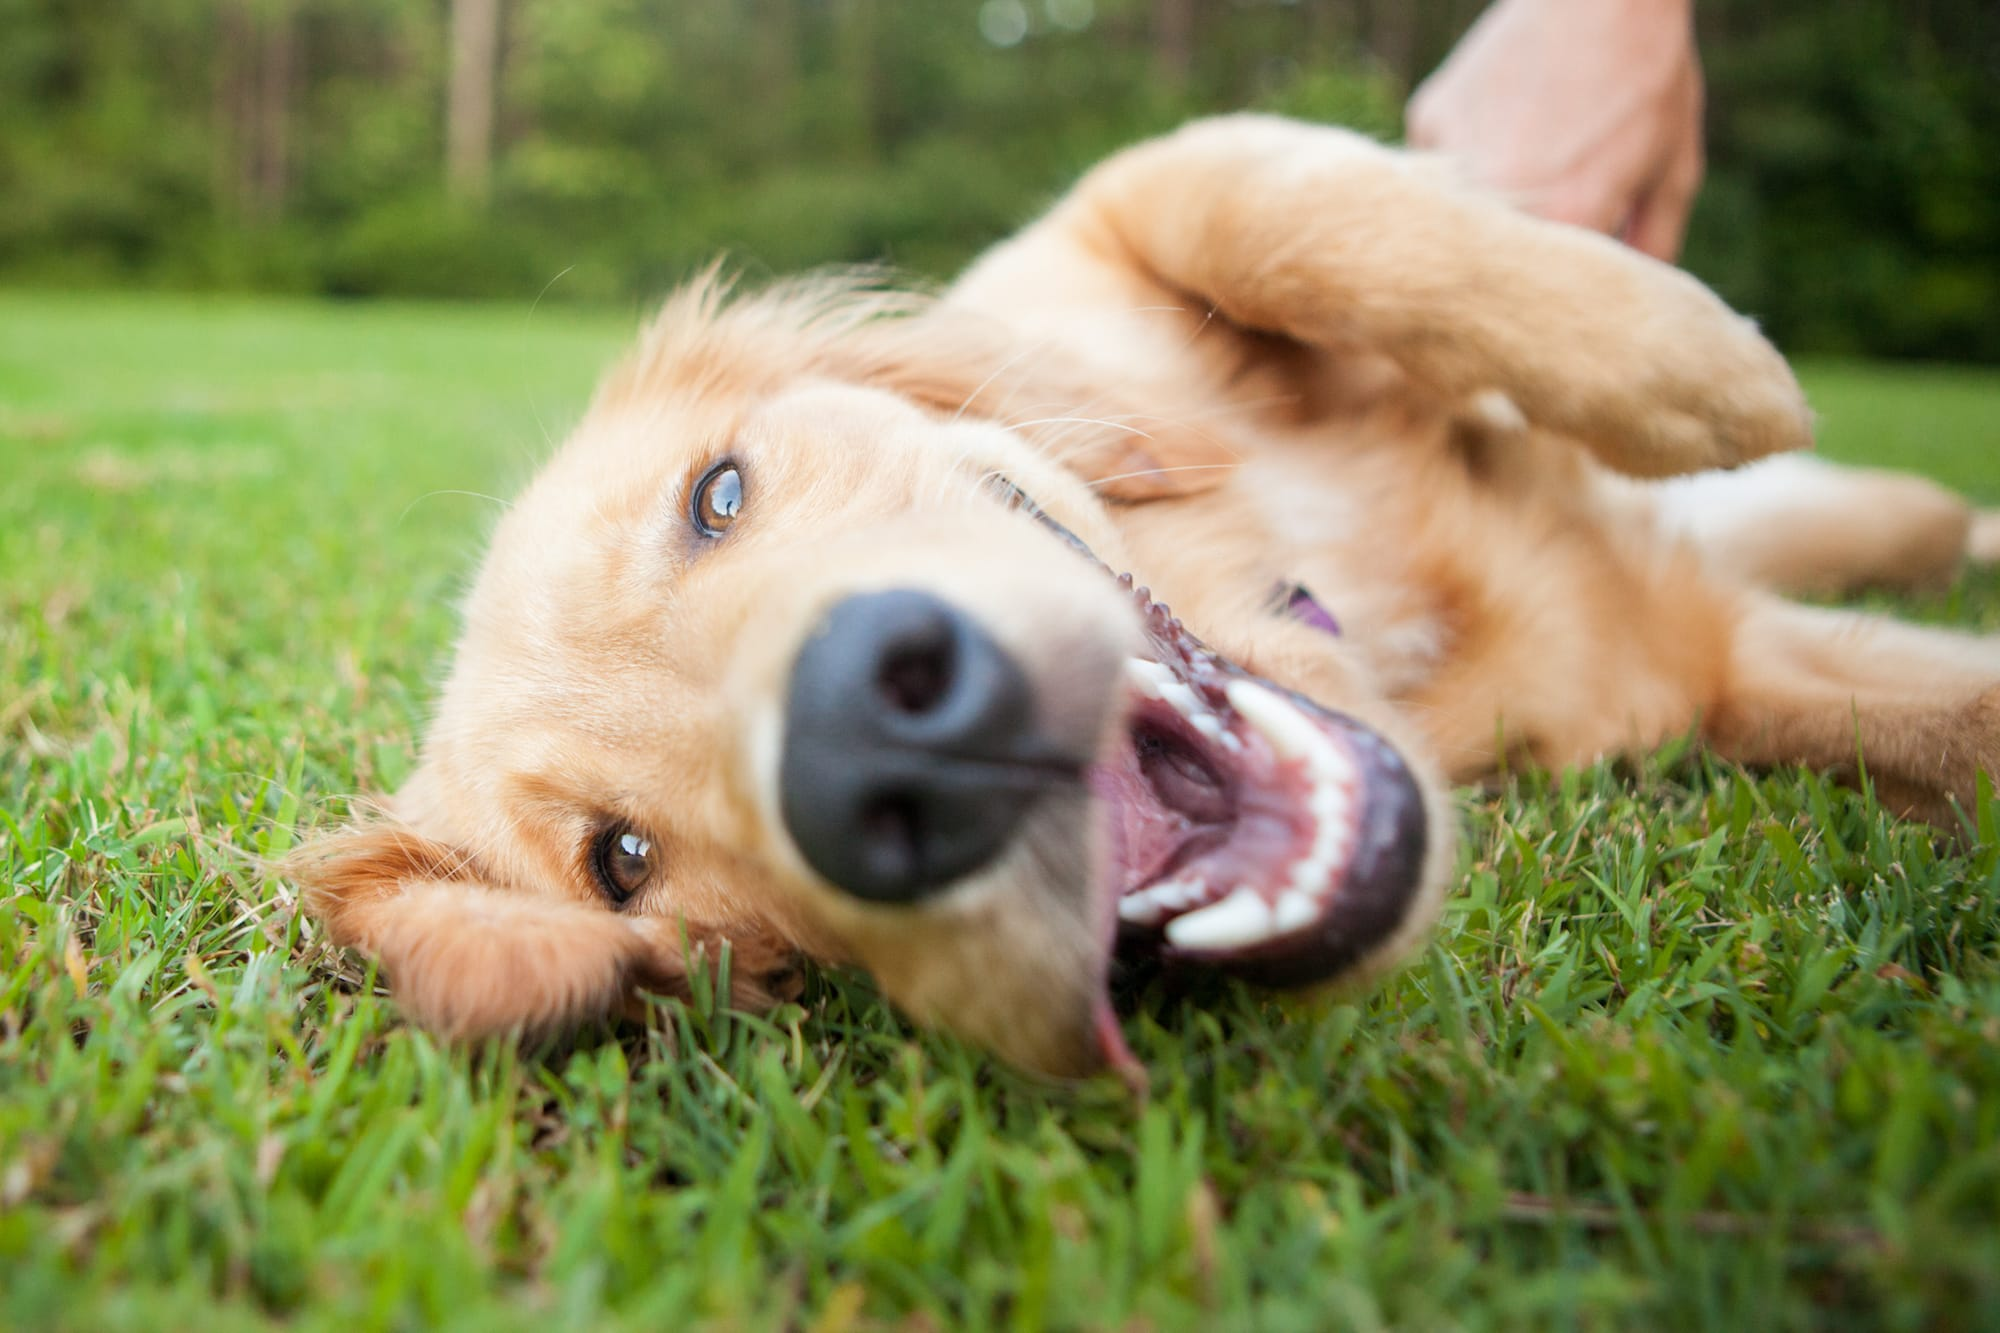 Golden retriever smiling in grass